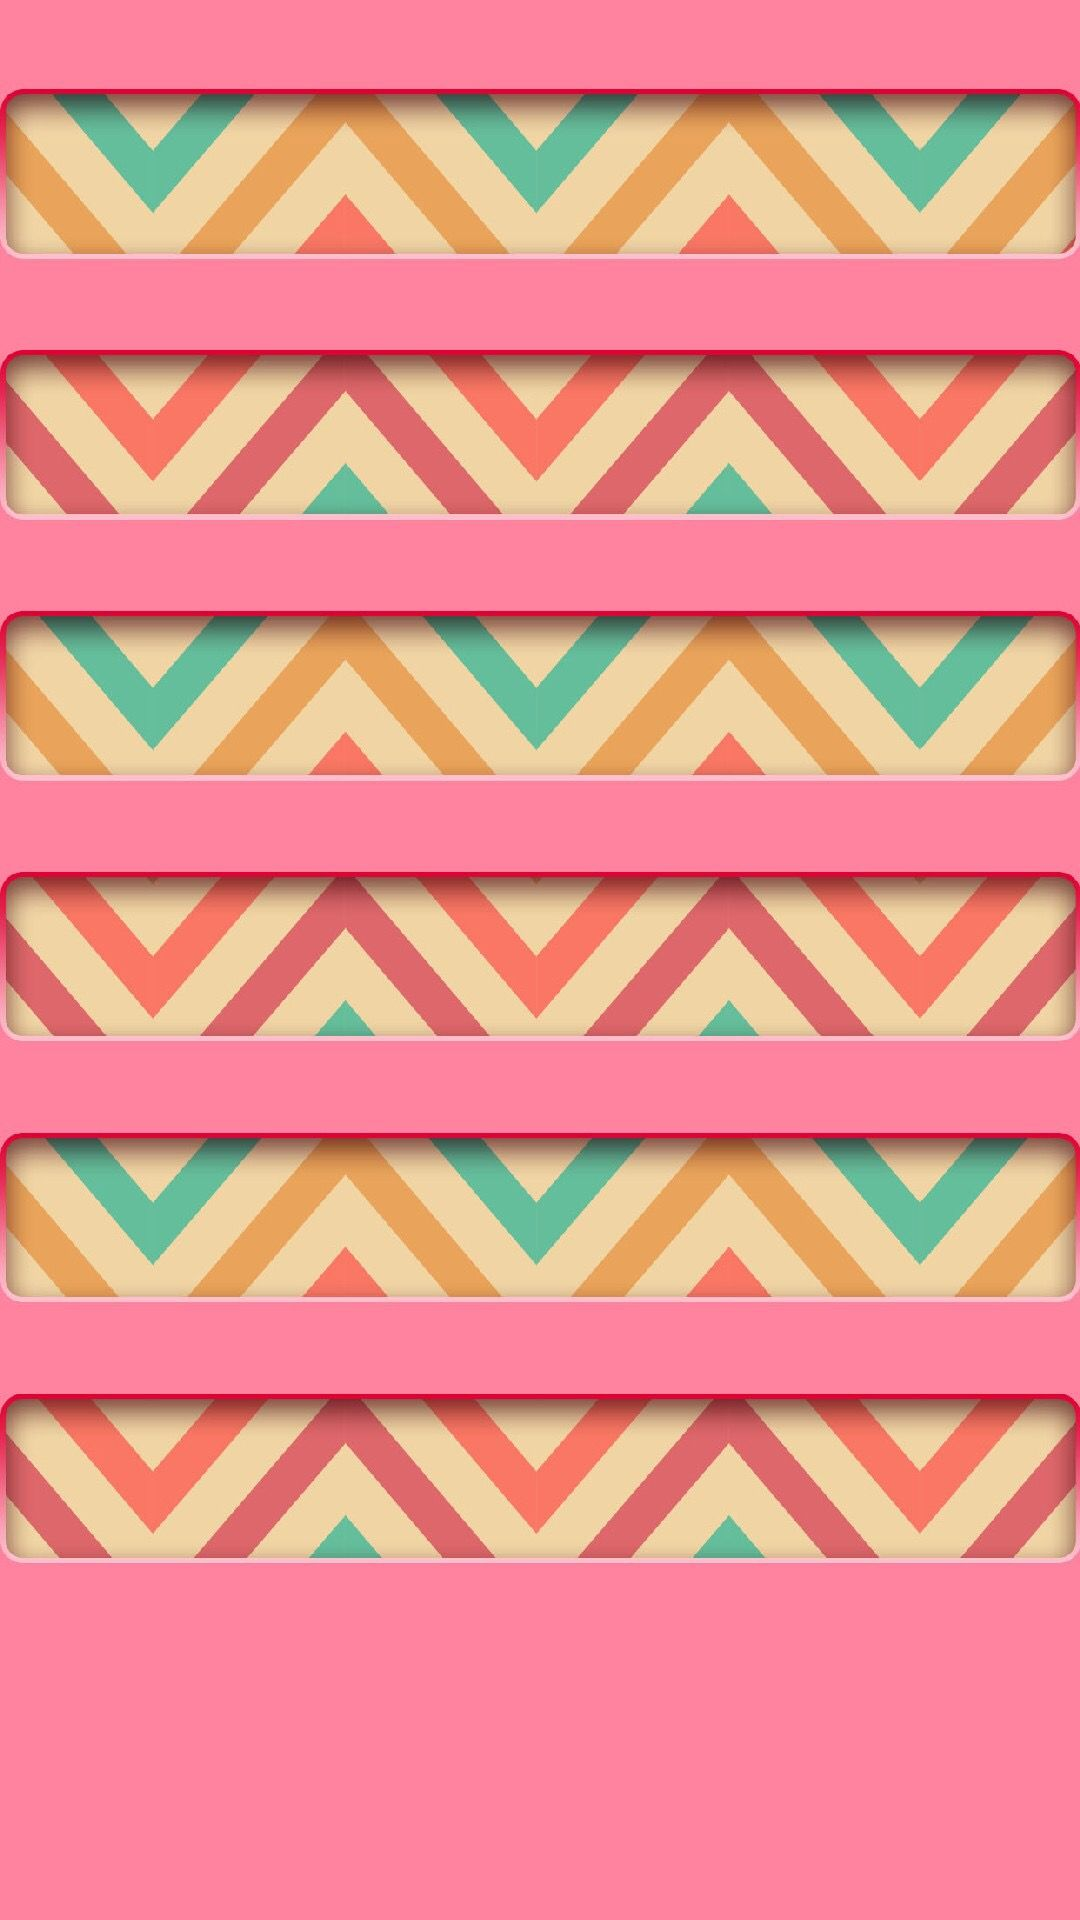 Precious Shelves Colorful Zigzag Stripes Pink Pattern Girls Free Backgrounds Girls Get Free Shelves Colorful Zigzag Stripes Pink Backgrounds